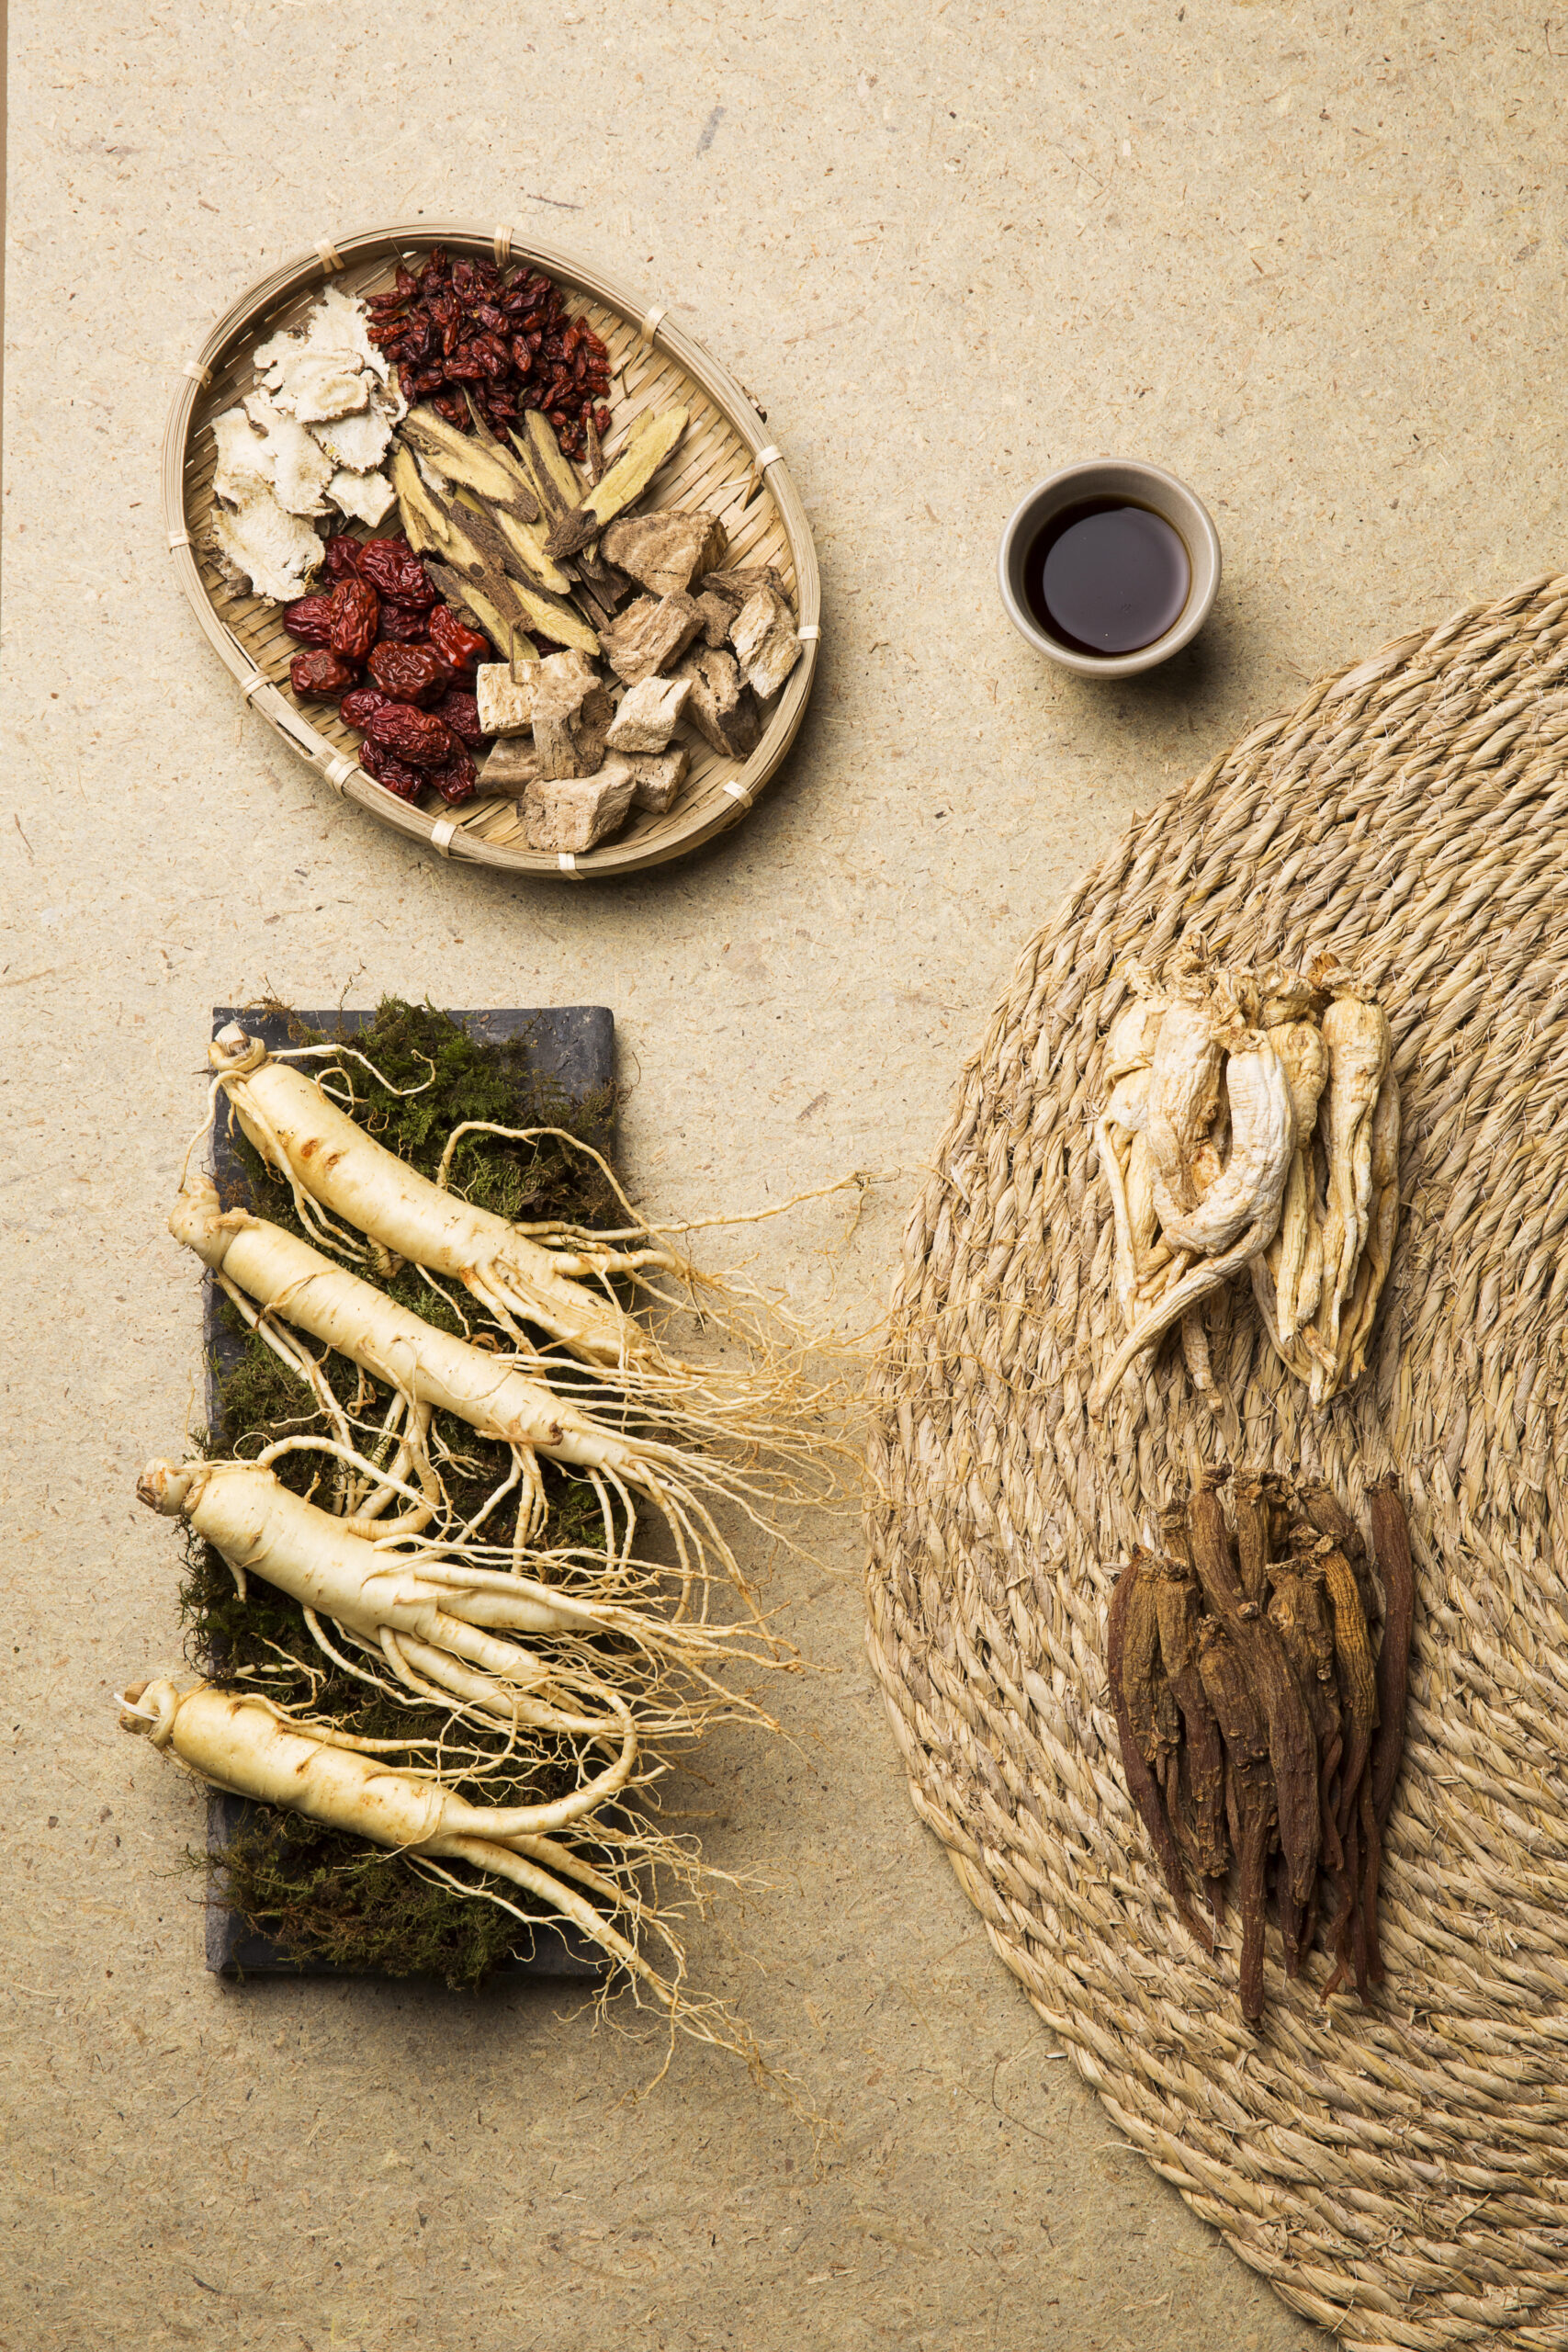 American & Asian Ginseng: The Differences & Similarities